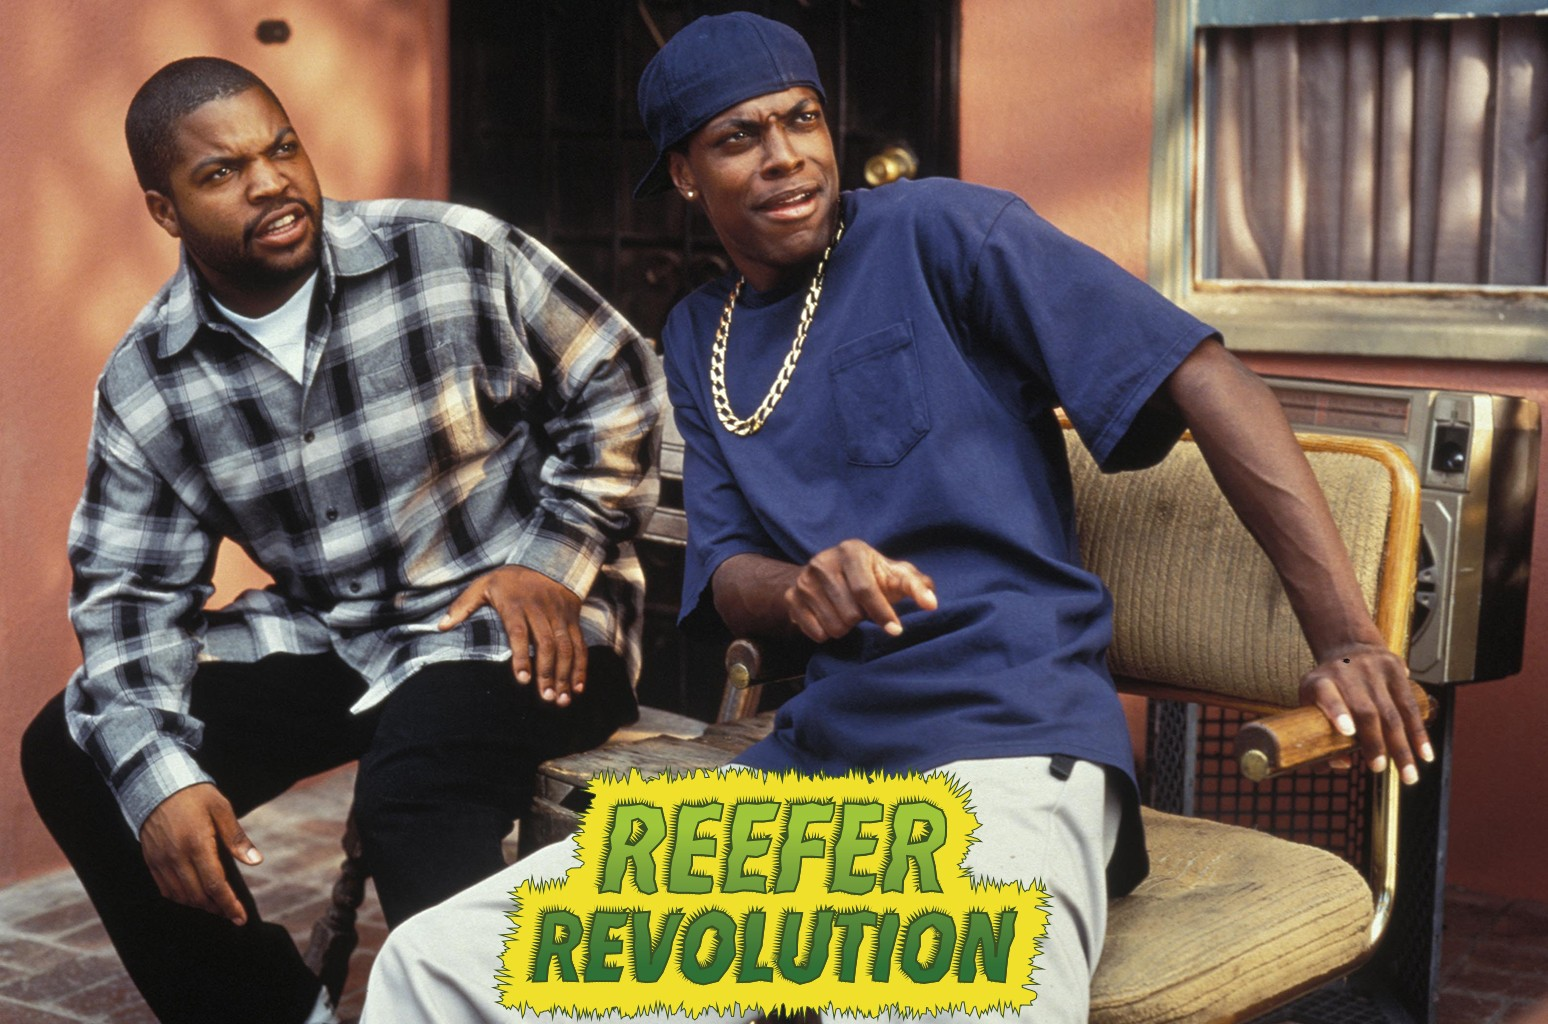 Ice Cube and Chris Tucker in the movie Friday.